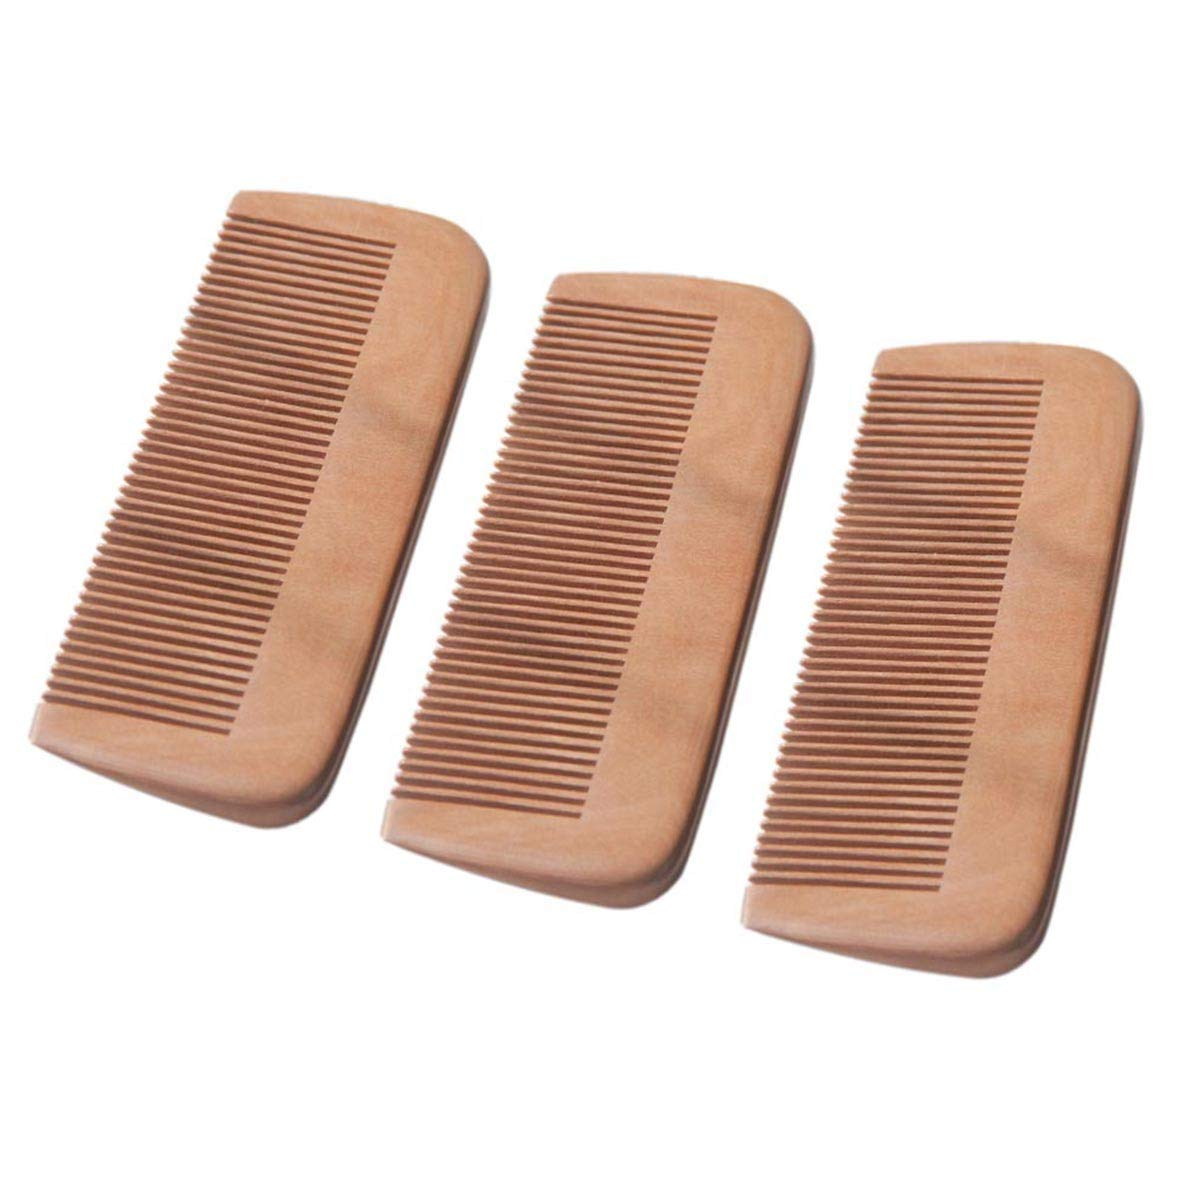 MXHAPPY Wooden Comb Natural sold out Direct sale of manufacturer Wood Hair Peach Detangling